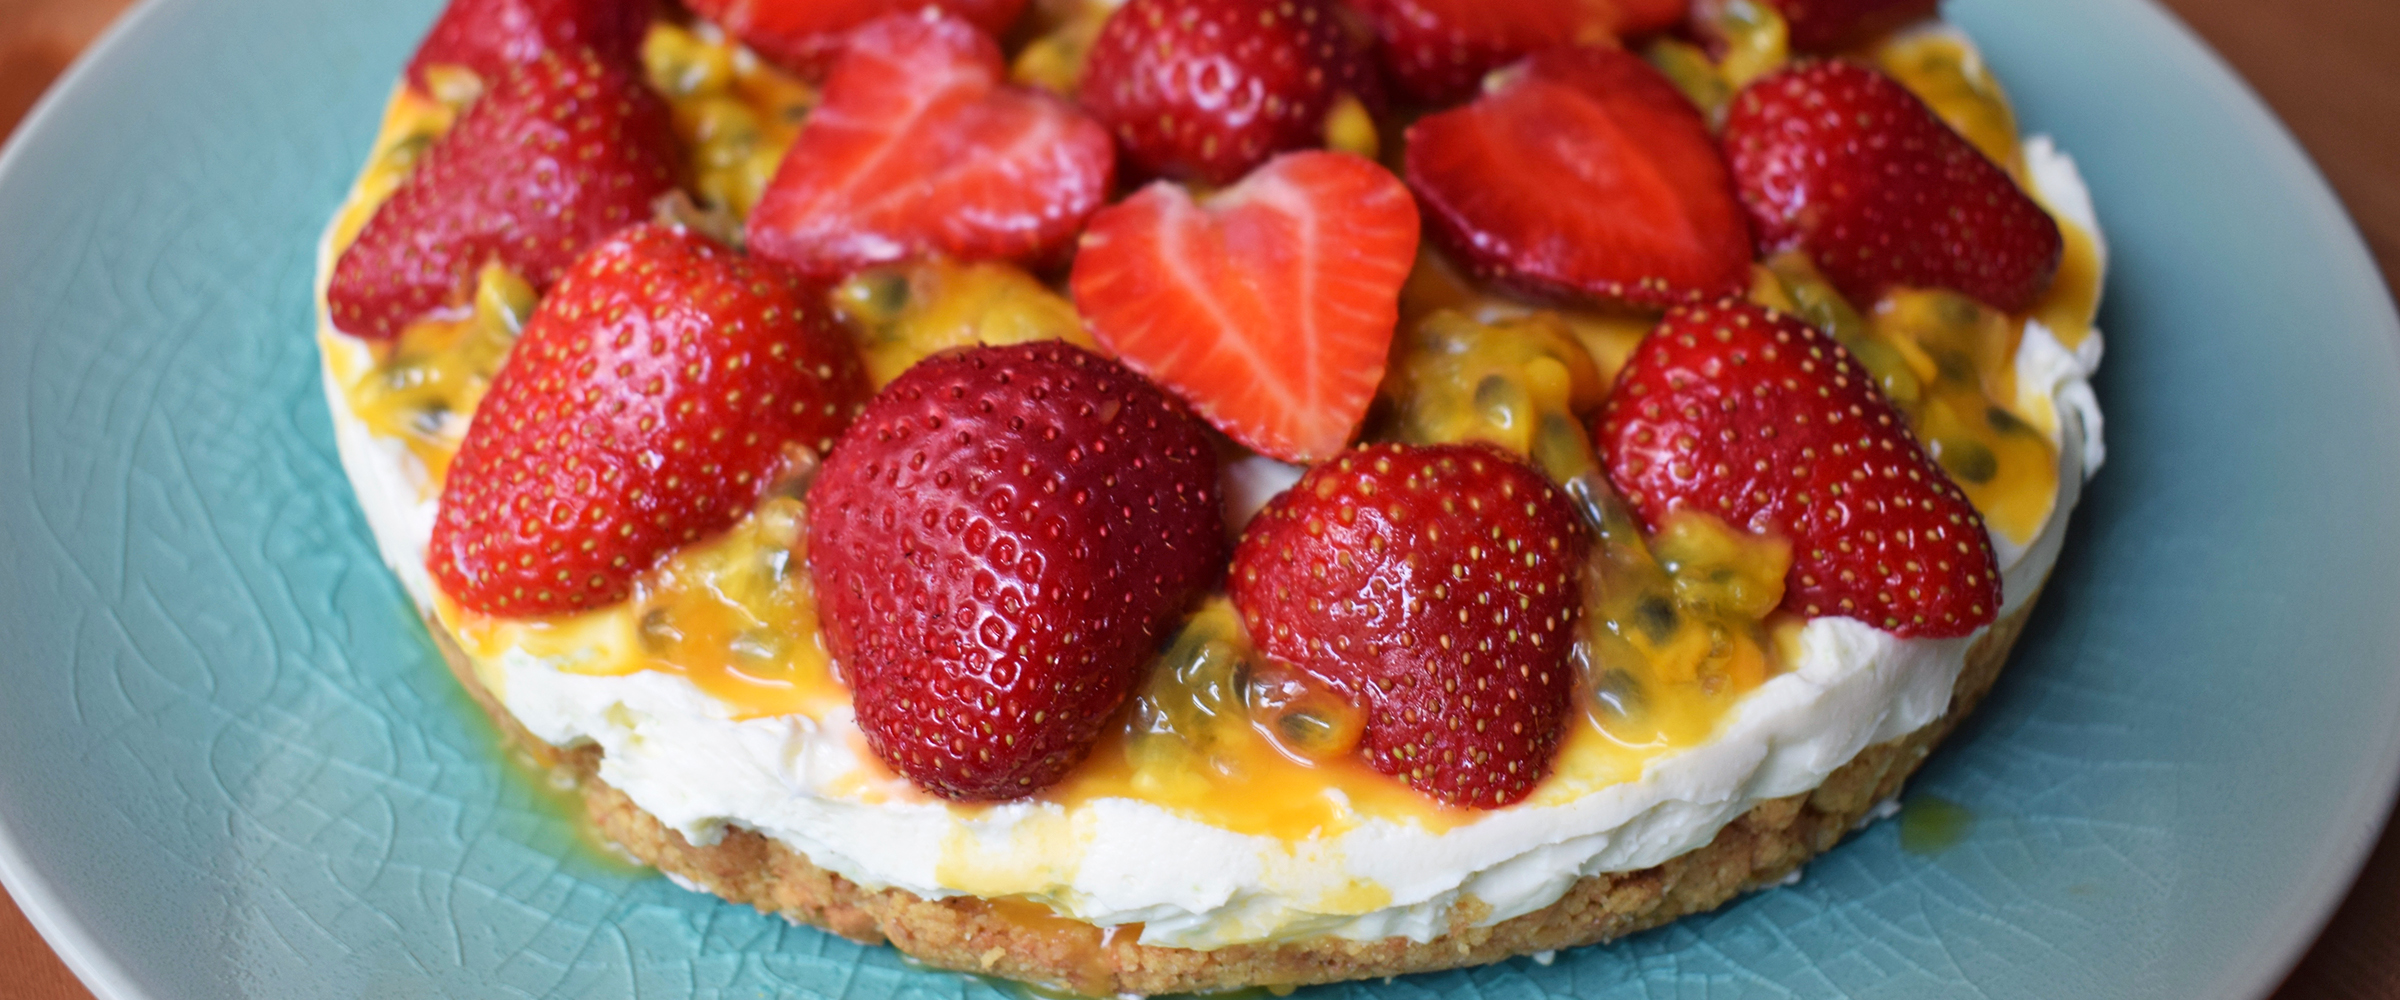 Cook with M&S: No-bake strawberry and passionfruit cheesecake